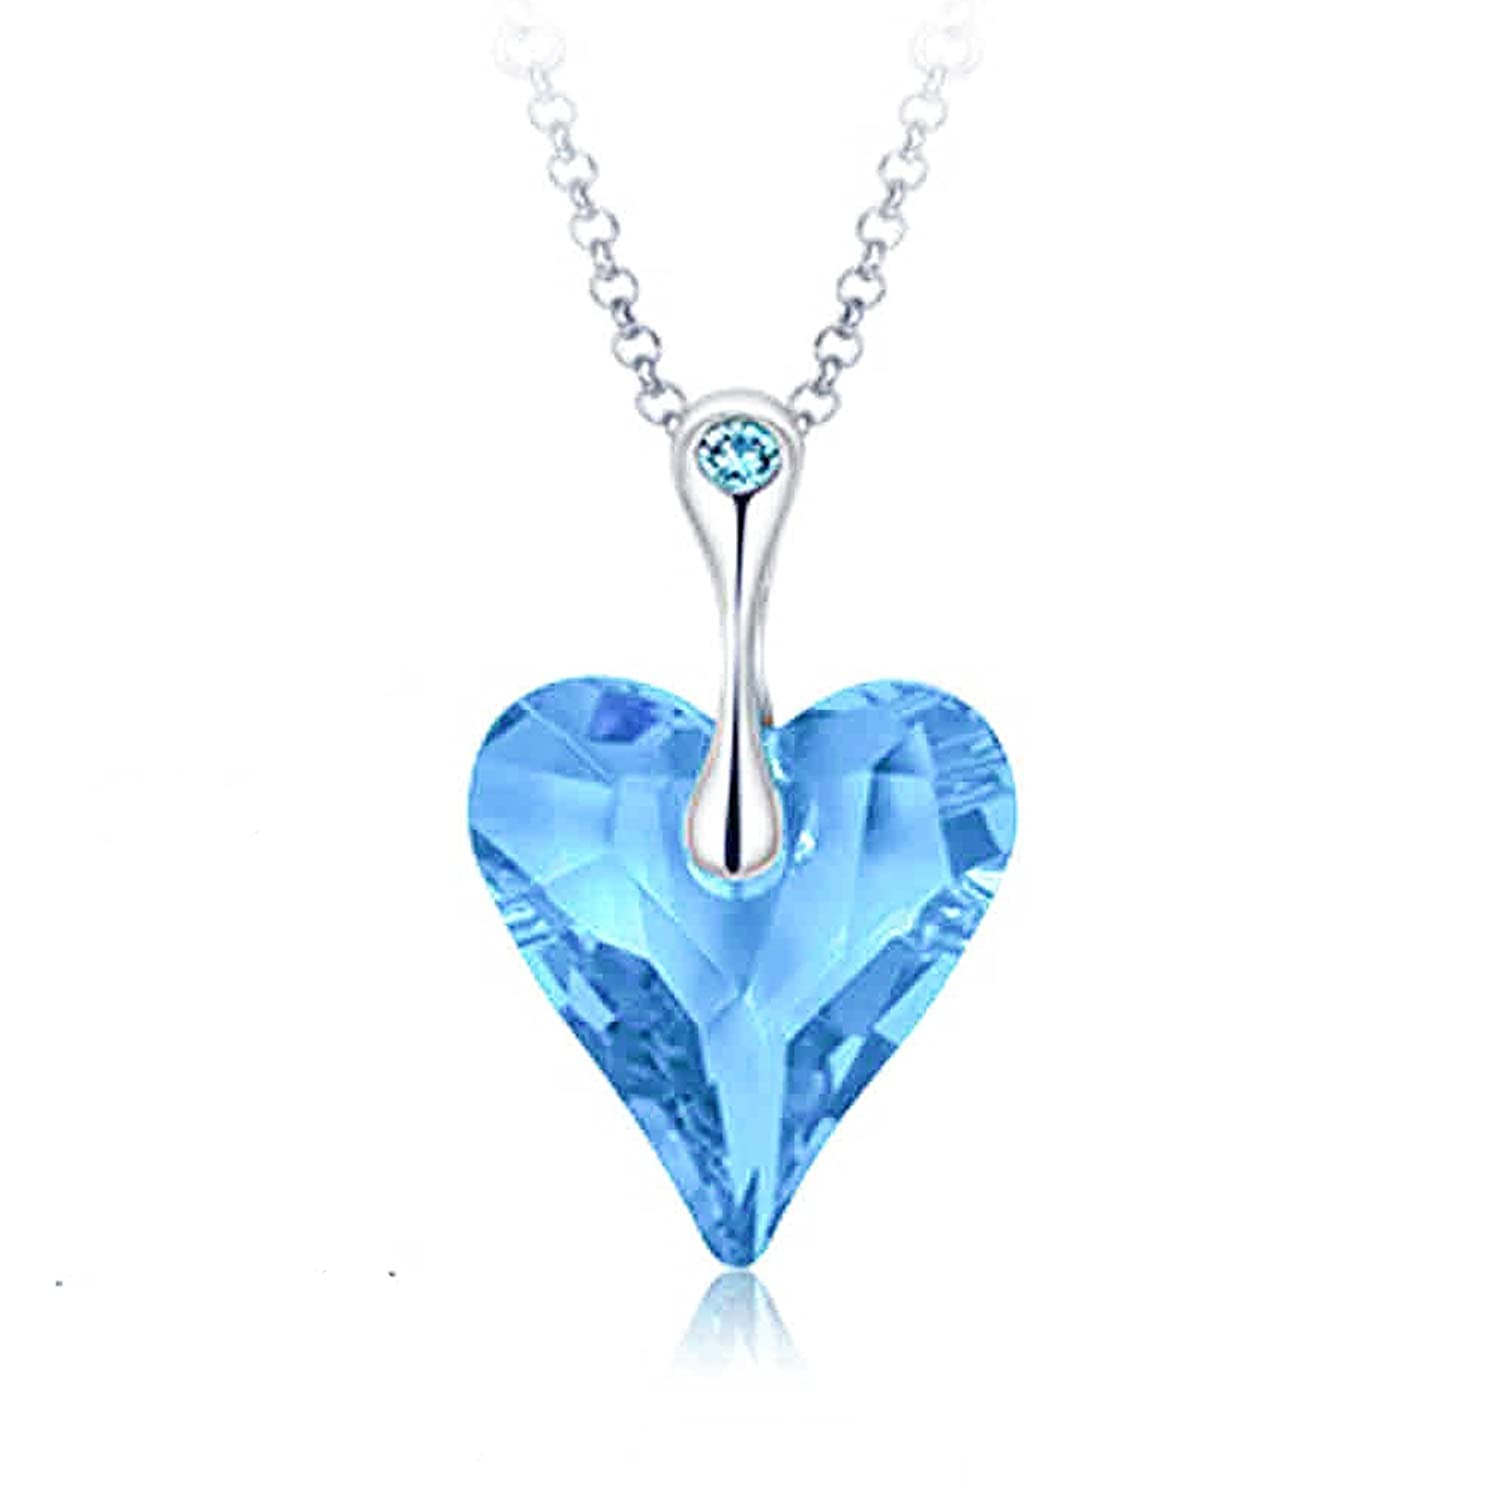 Buy yellow chimes crystals from swarovski big blue ocean heart buy yellow chimes crystals from swarovski big blue ocean heart long chain pendant for women and girls online at low prices in india amazon jewellery store aloadofball Choice Image